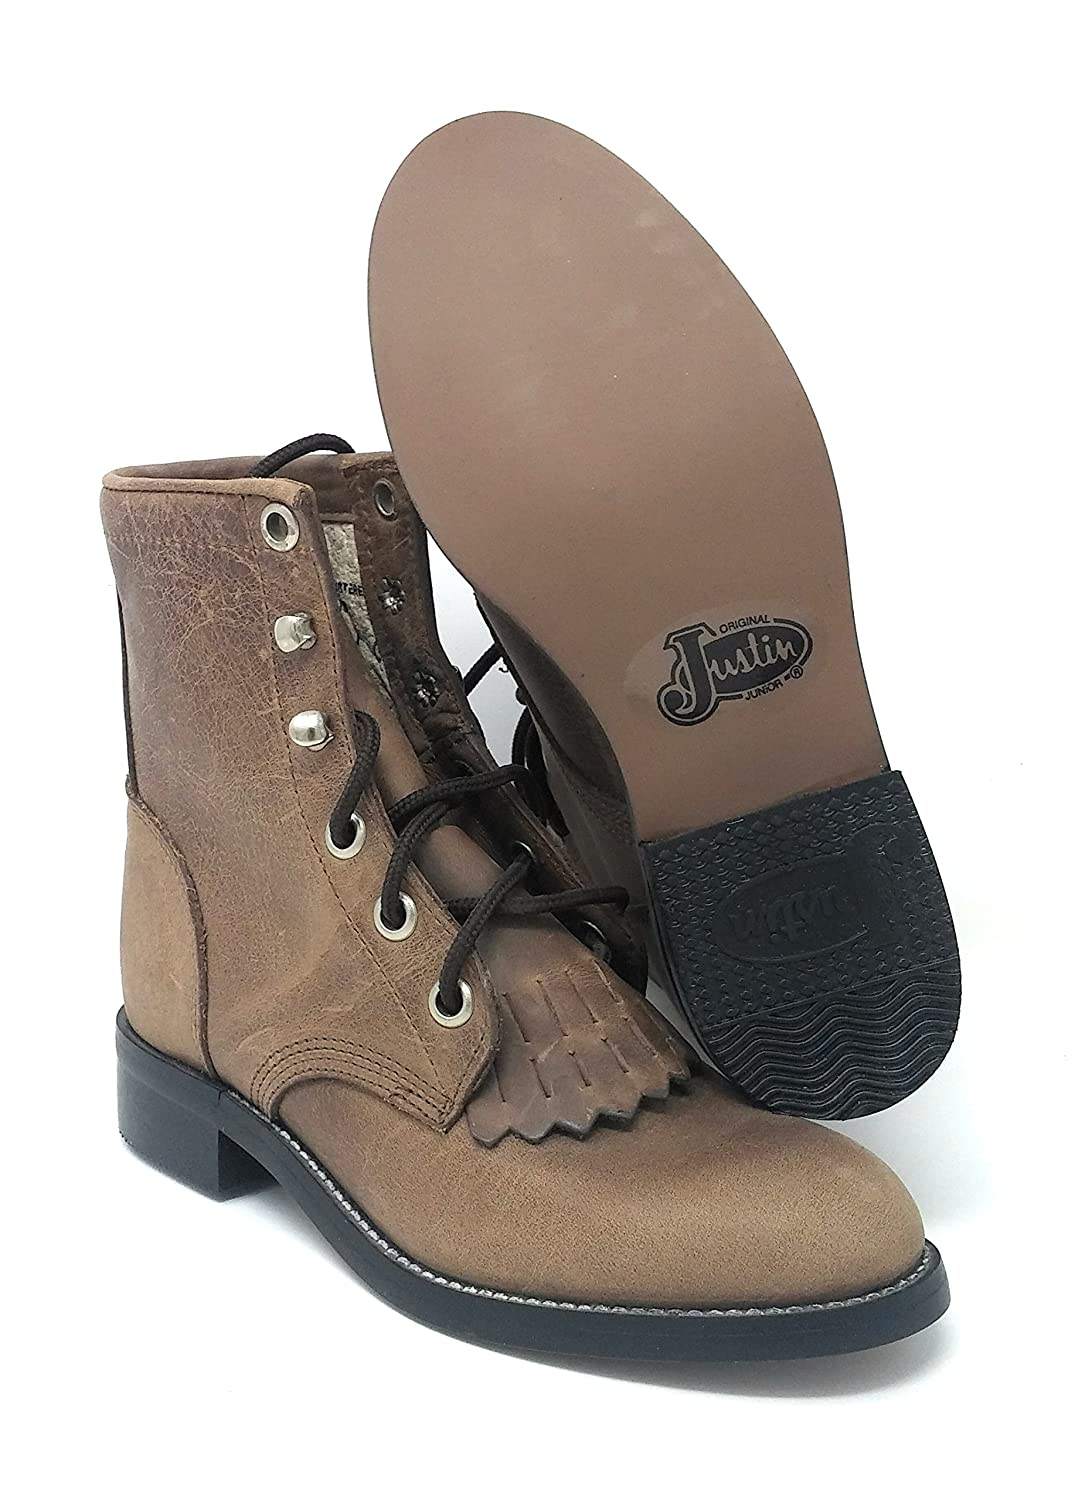 Justin Girls Small Kid Bay Apache Boots Western Style # 545C Size 11.5 D